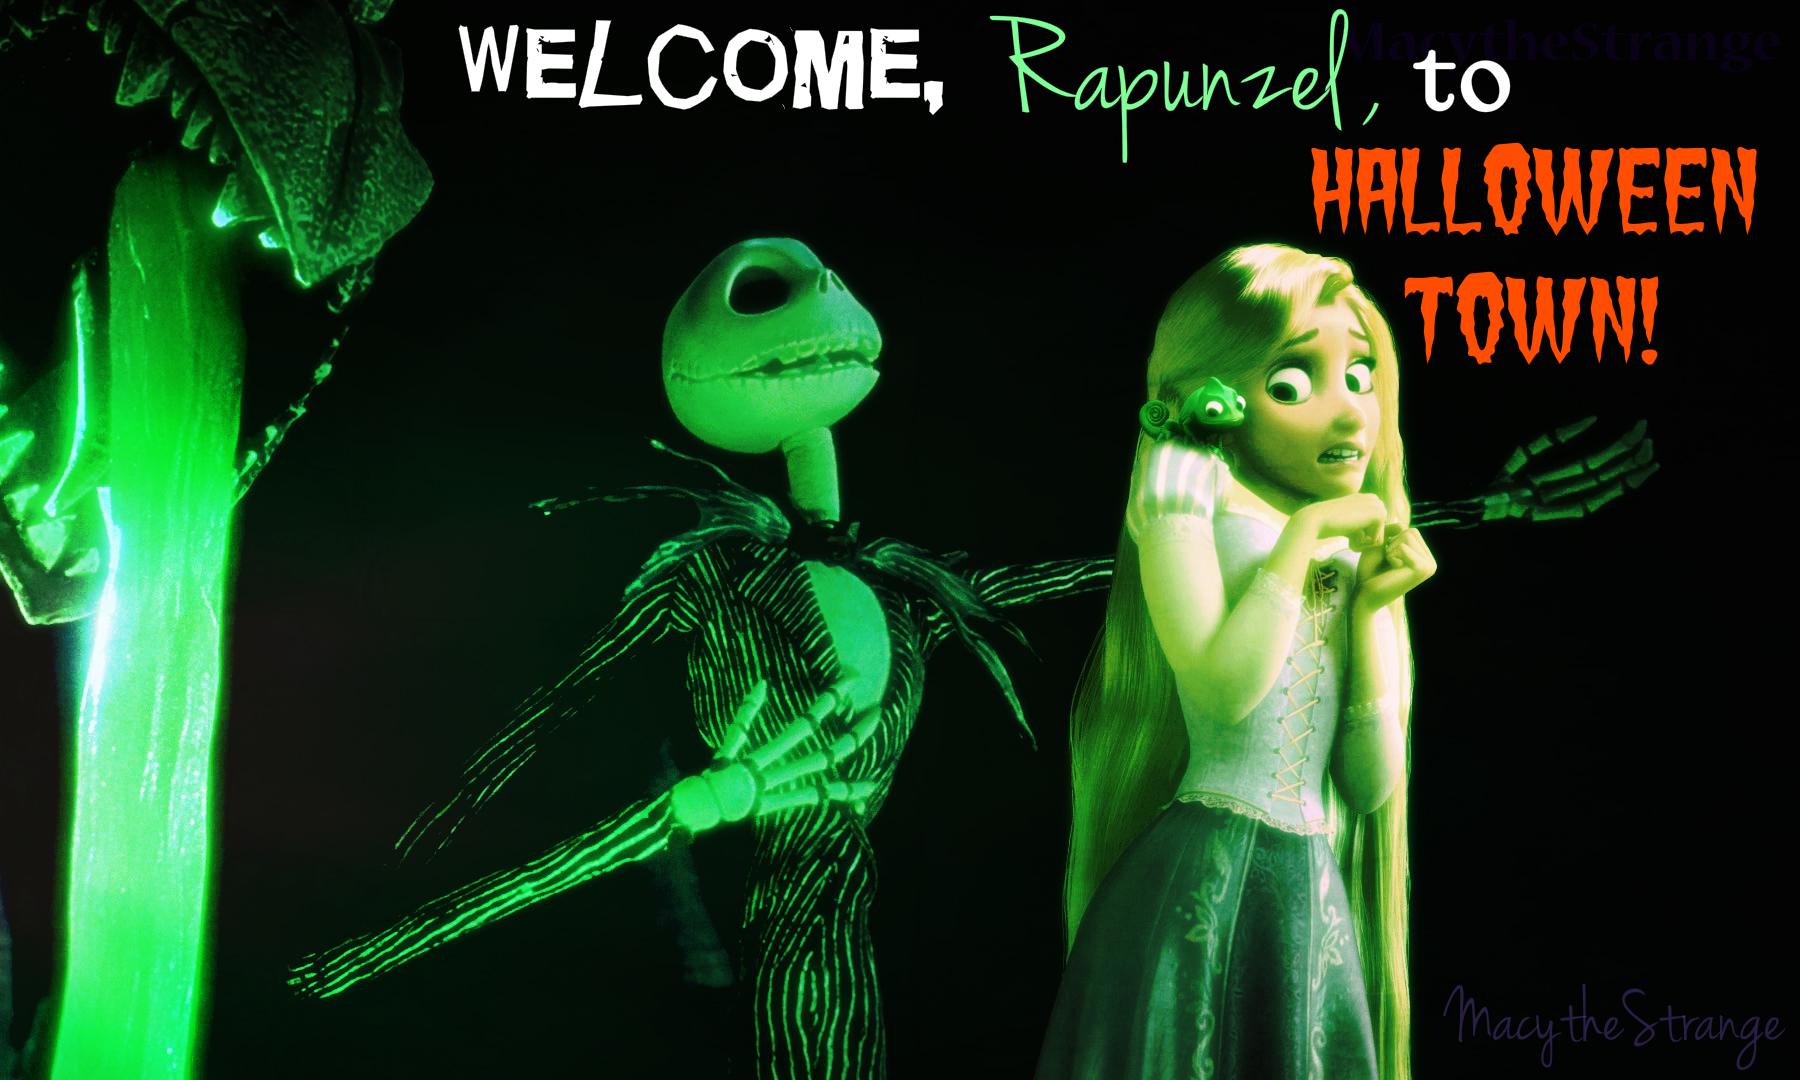 Welcome-Rapunzel-To-Halloweentown-disney